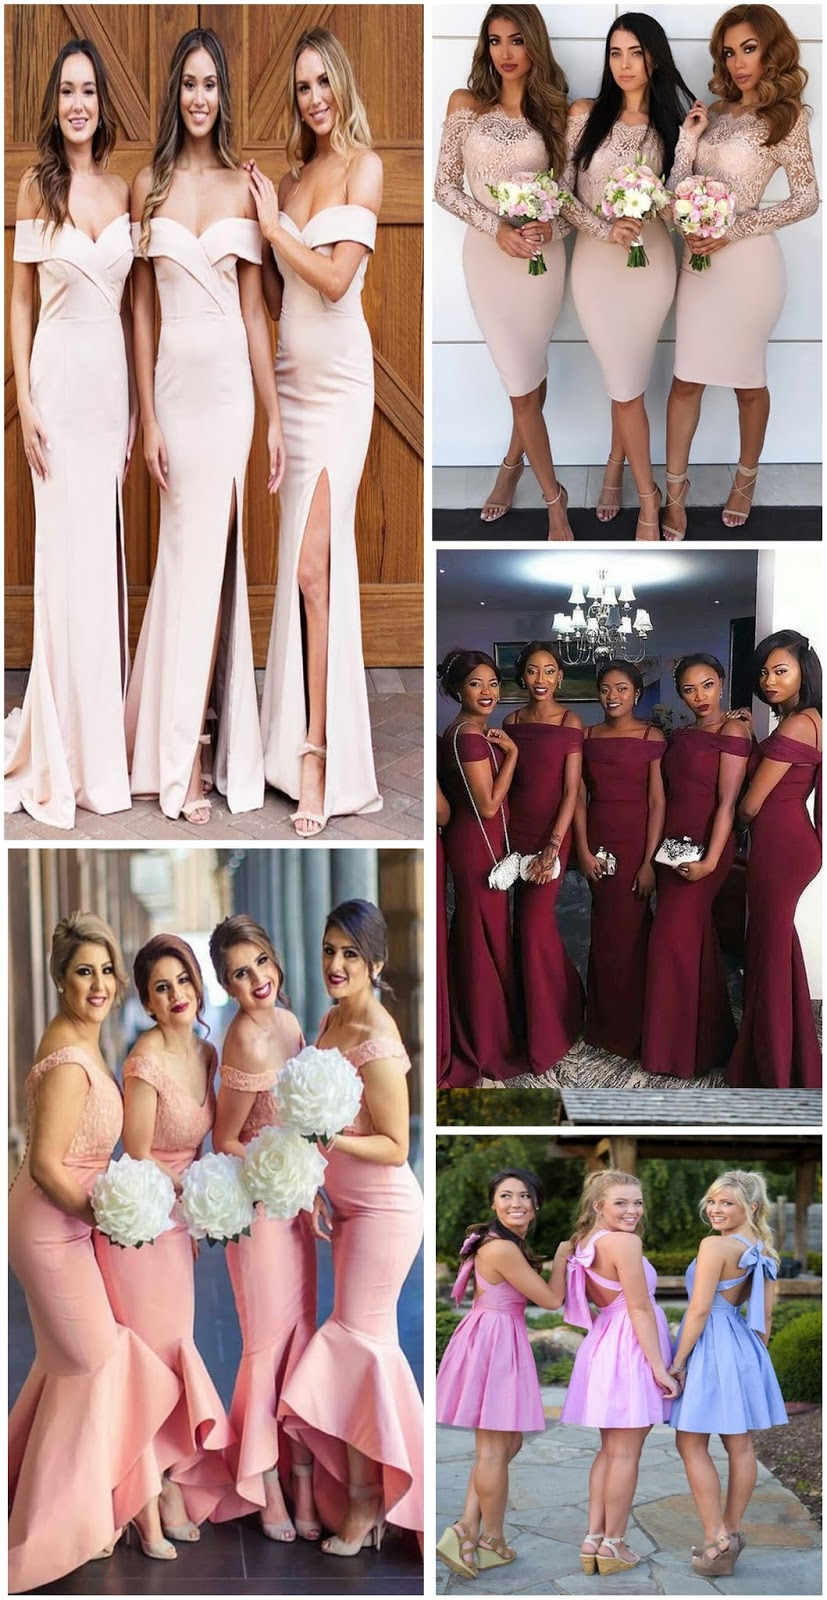 https://www.newarrivaldress.com/s/bridesmaid-dresses-24.html?source=blogluma